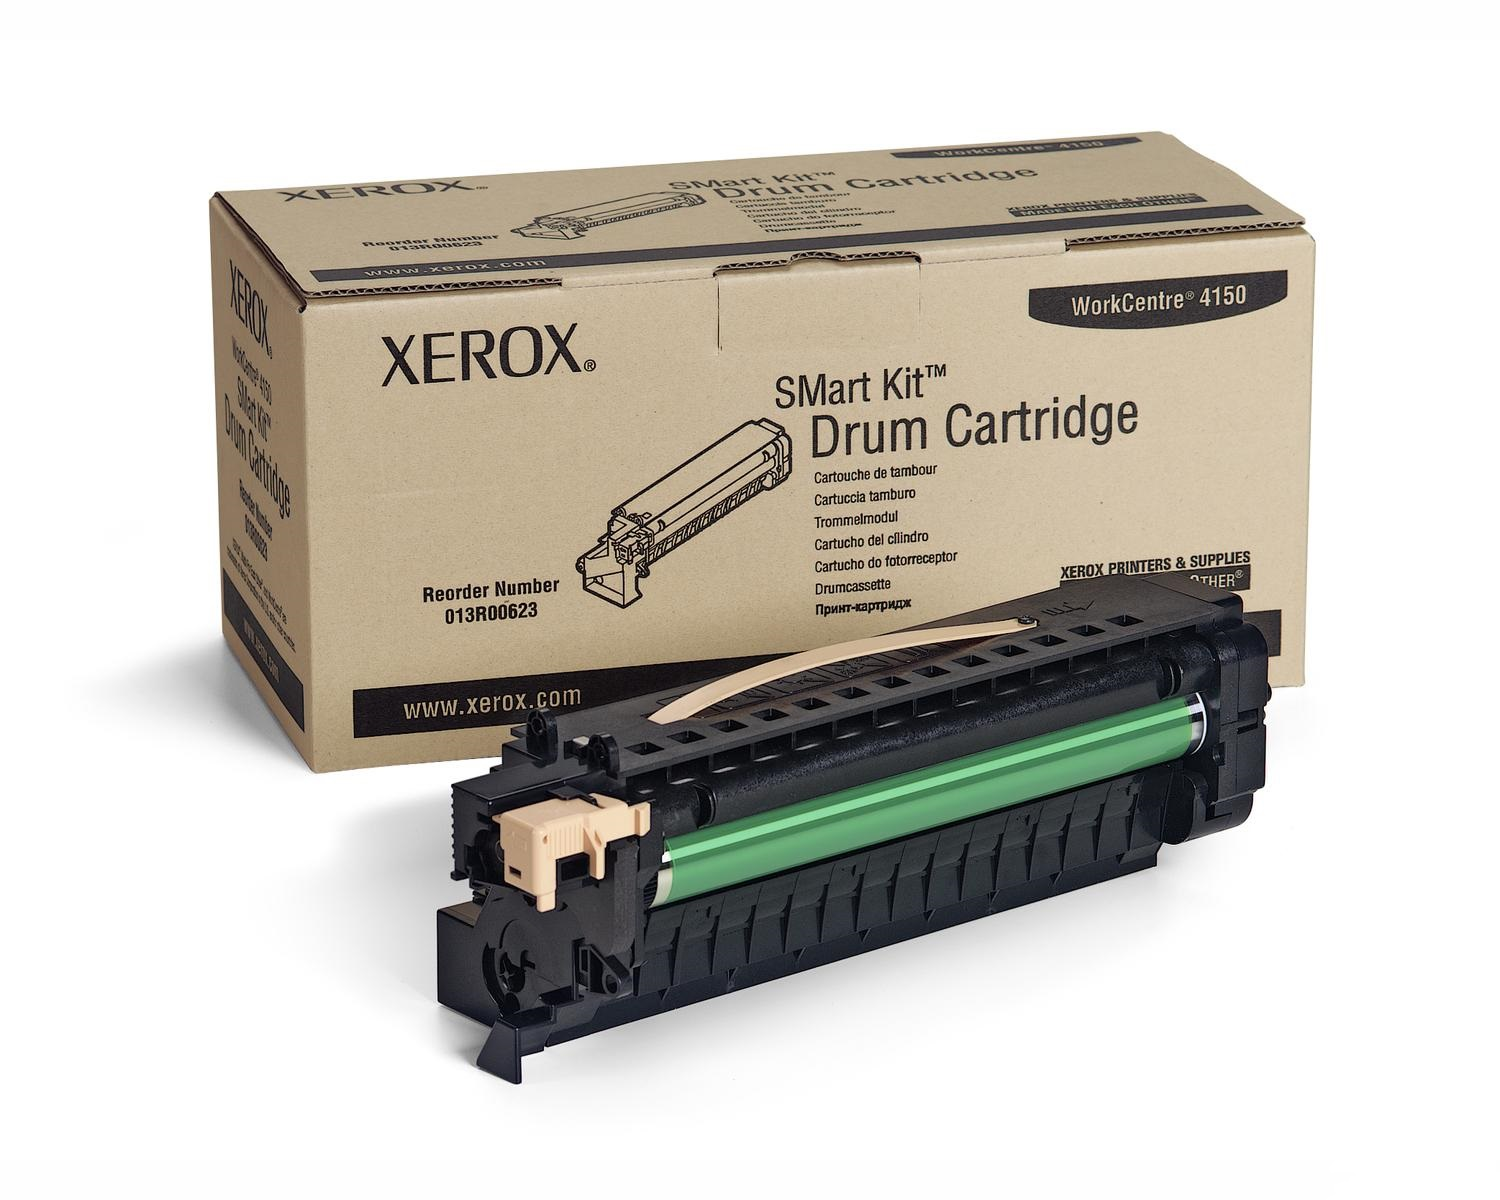 Xerox Worldwide Drum pro WC 4150 (60K images)